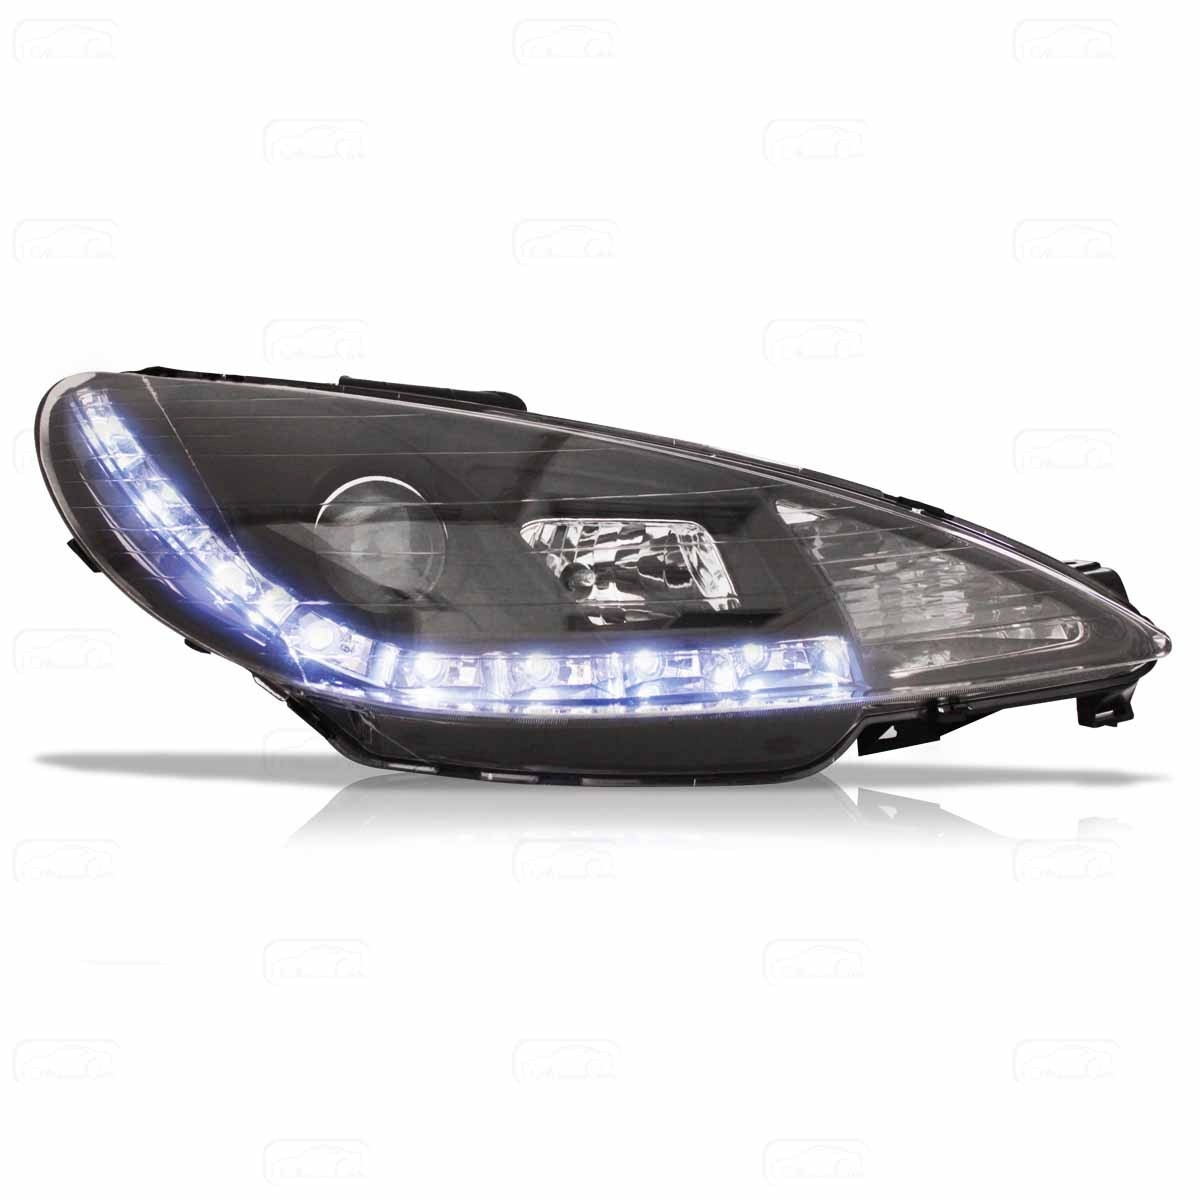 Farol Led Peugeot 206 98 At U00e9 08 Mascara Negra Par